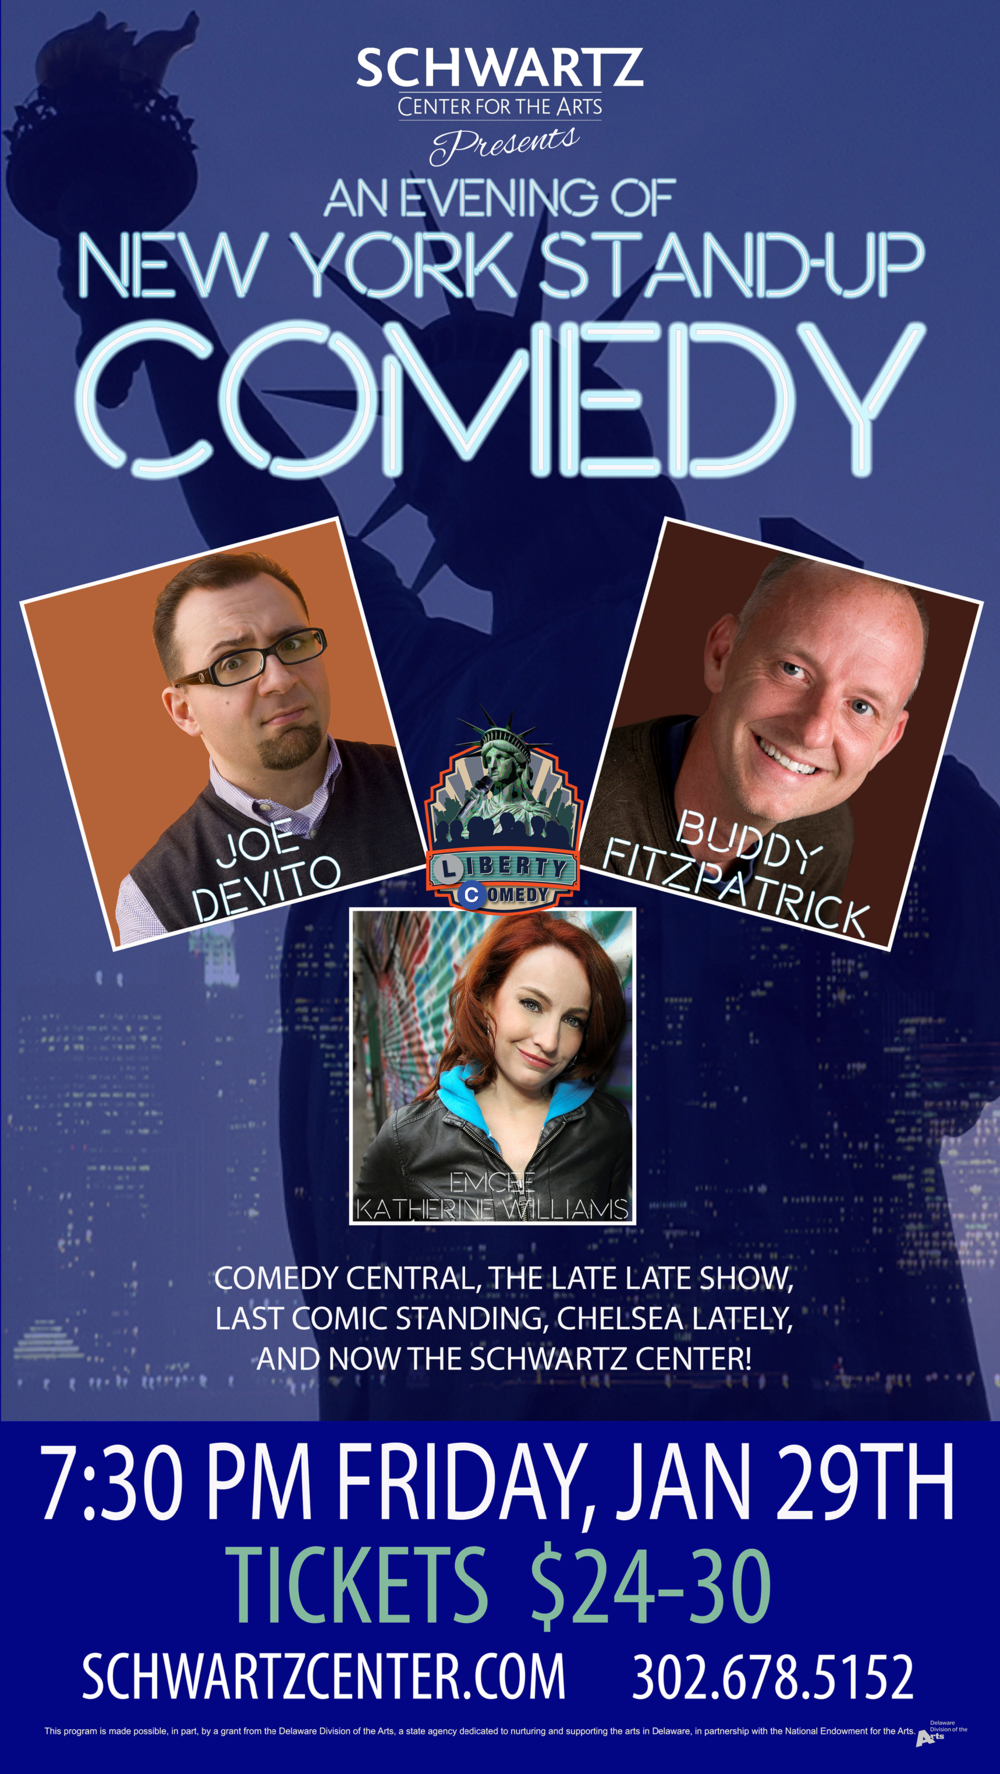 Event Poster - Comedy - Joe DeVito, Buddy Fitzpatrick, Katherine Williams